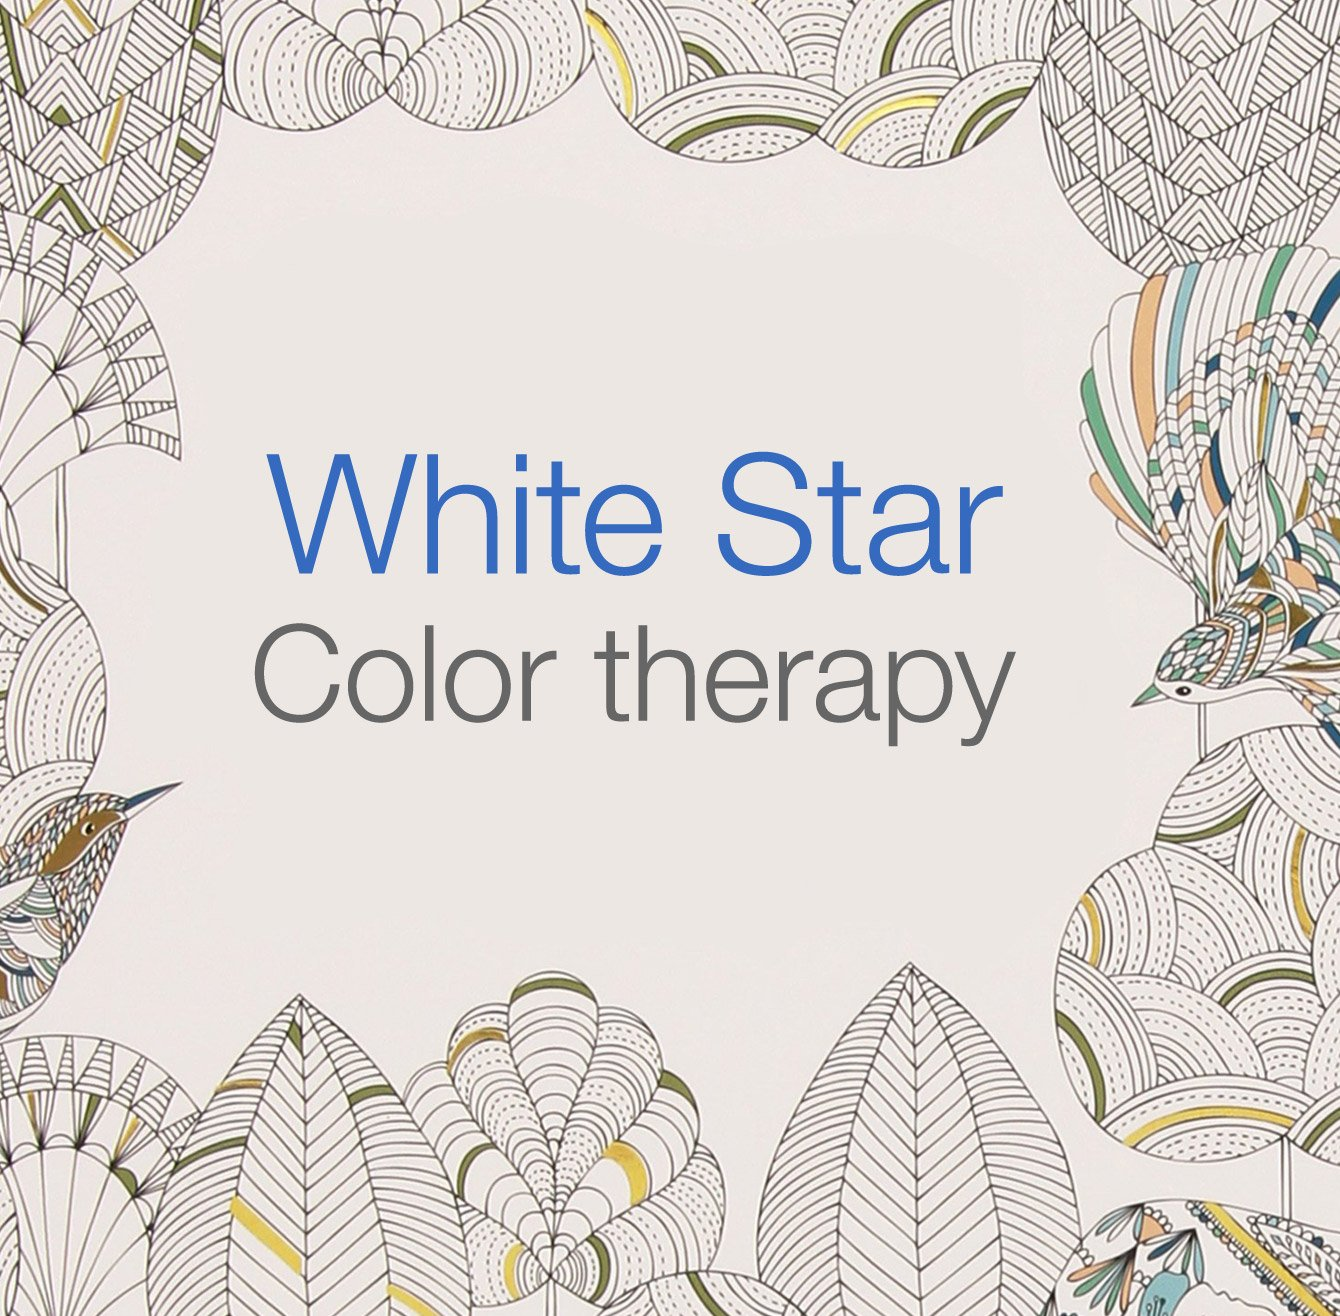 White Star Color therapy